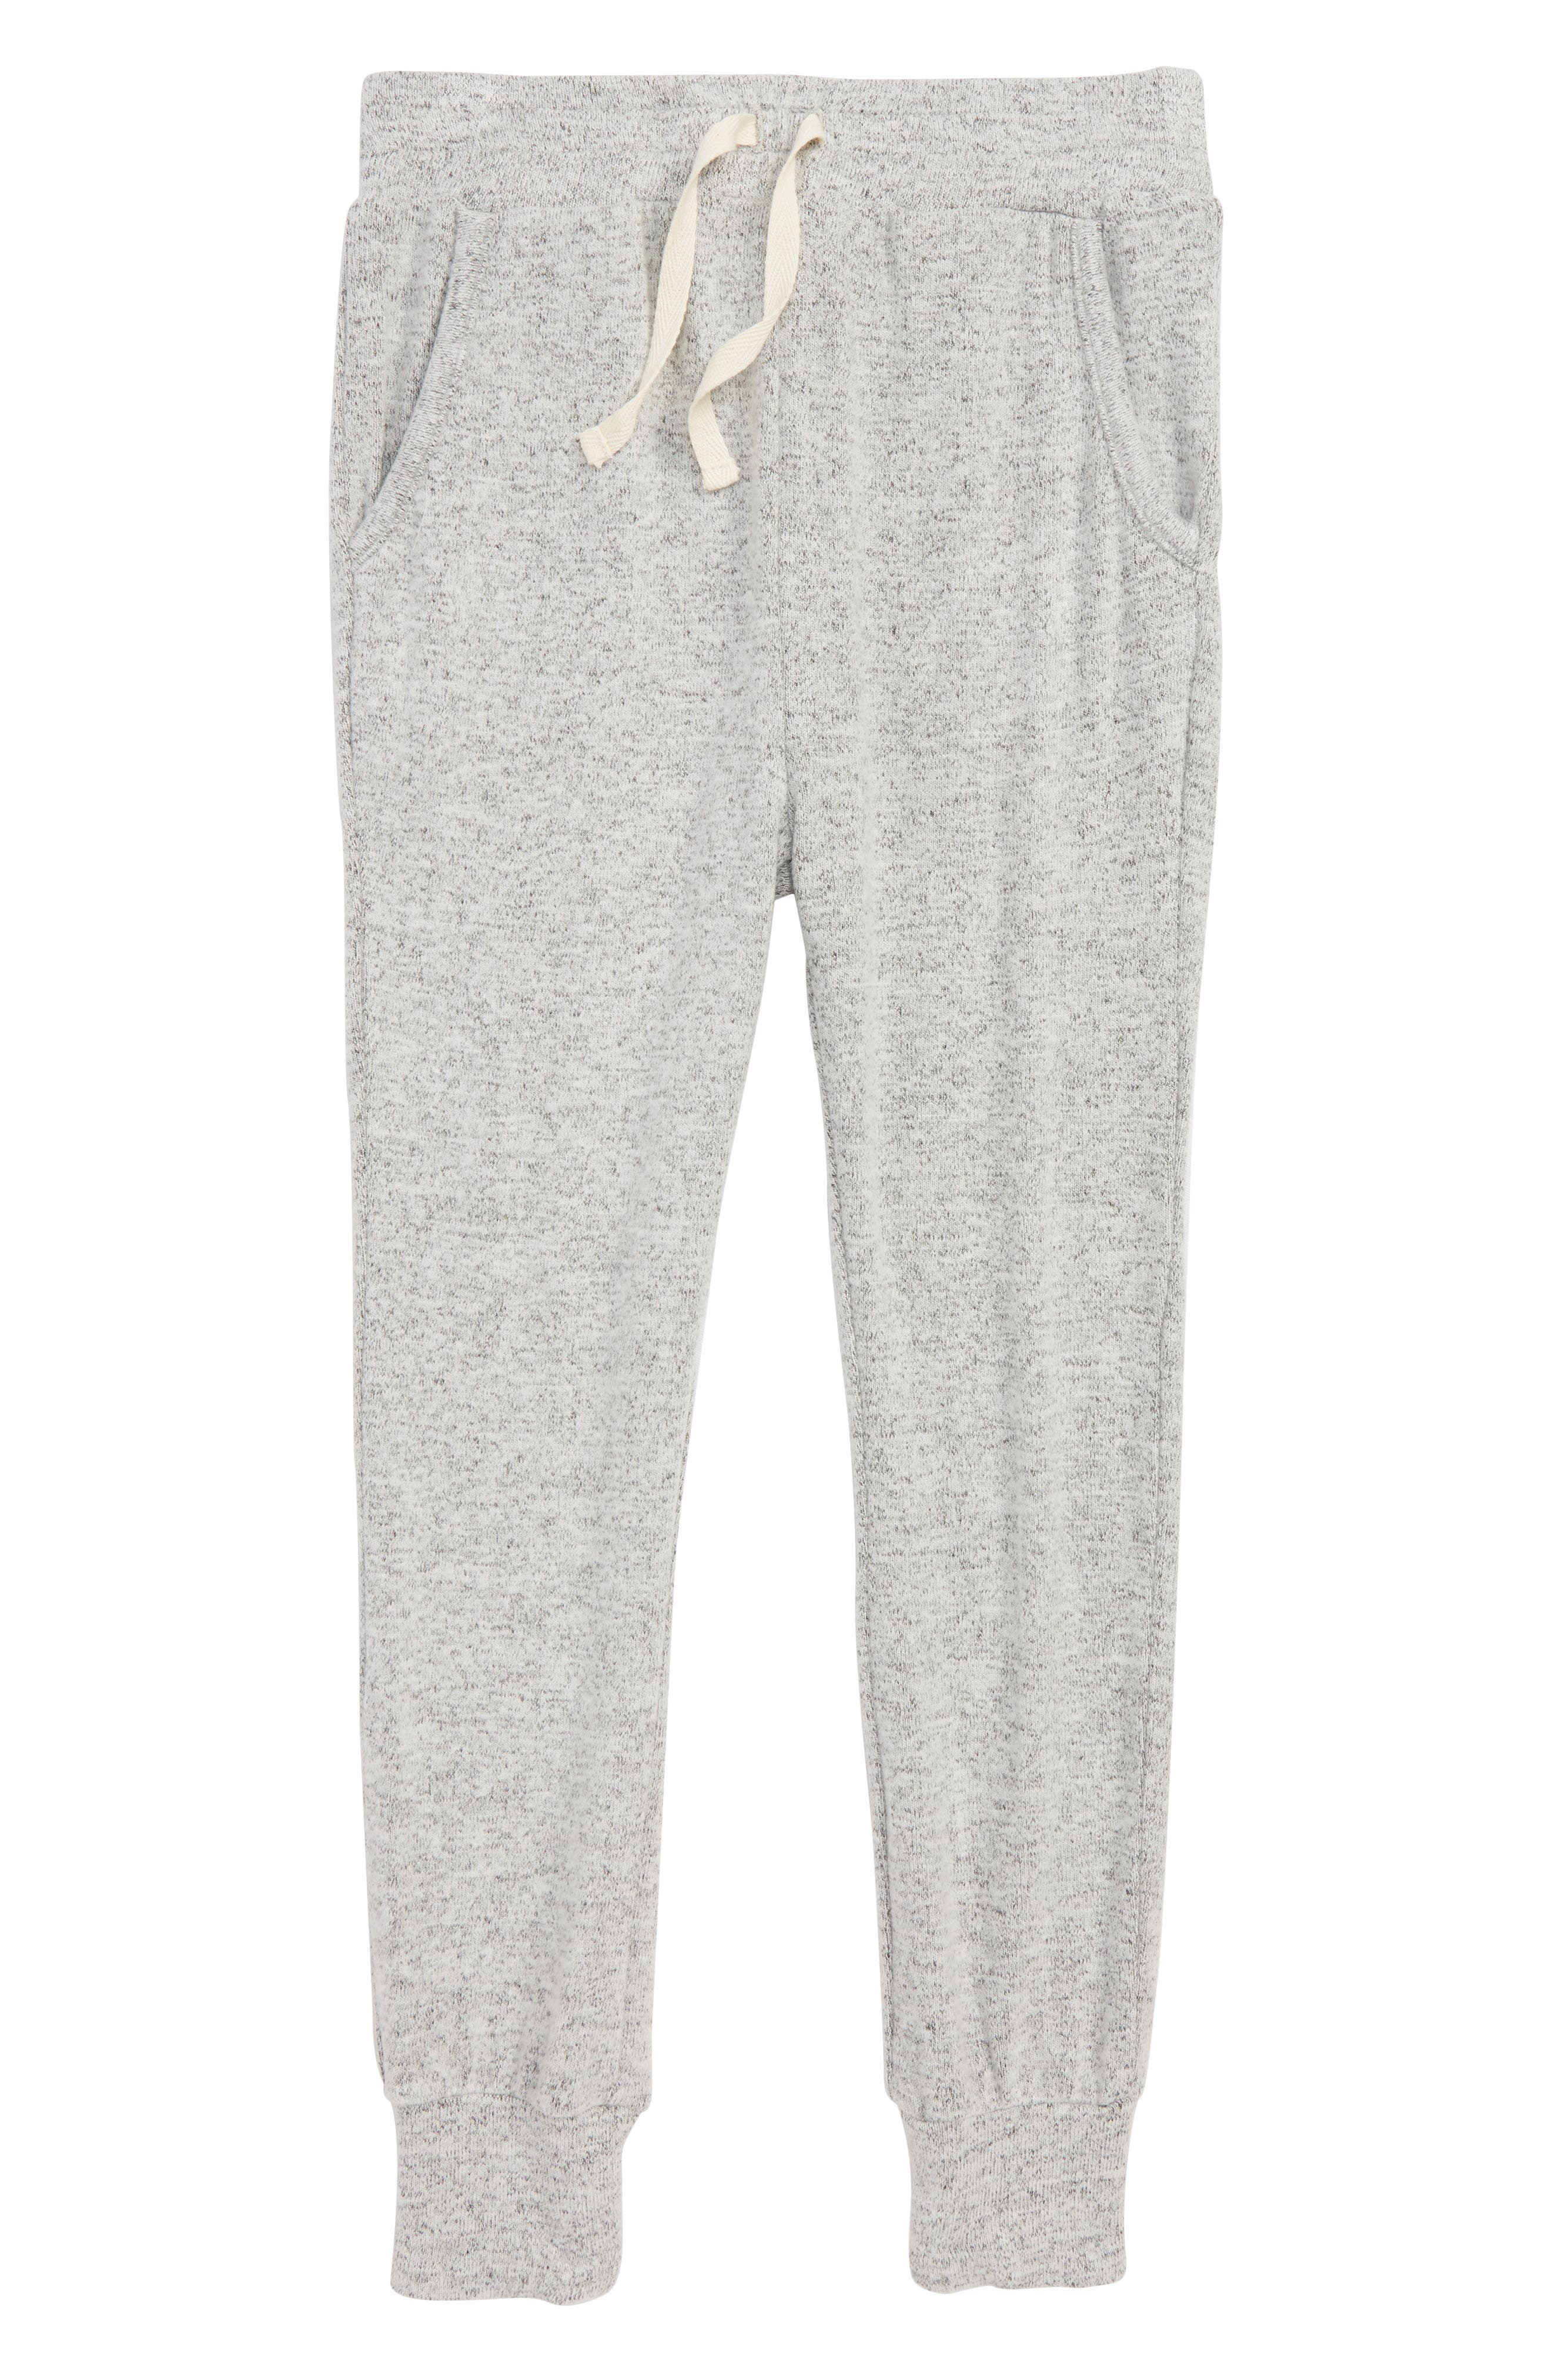 Cozy Jogger Pants,                             Main thumbnail 1, color,                             GREY ASH HEATHER